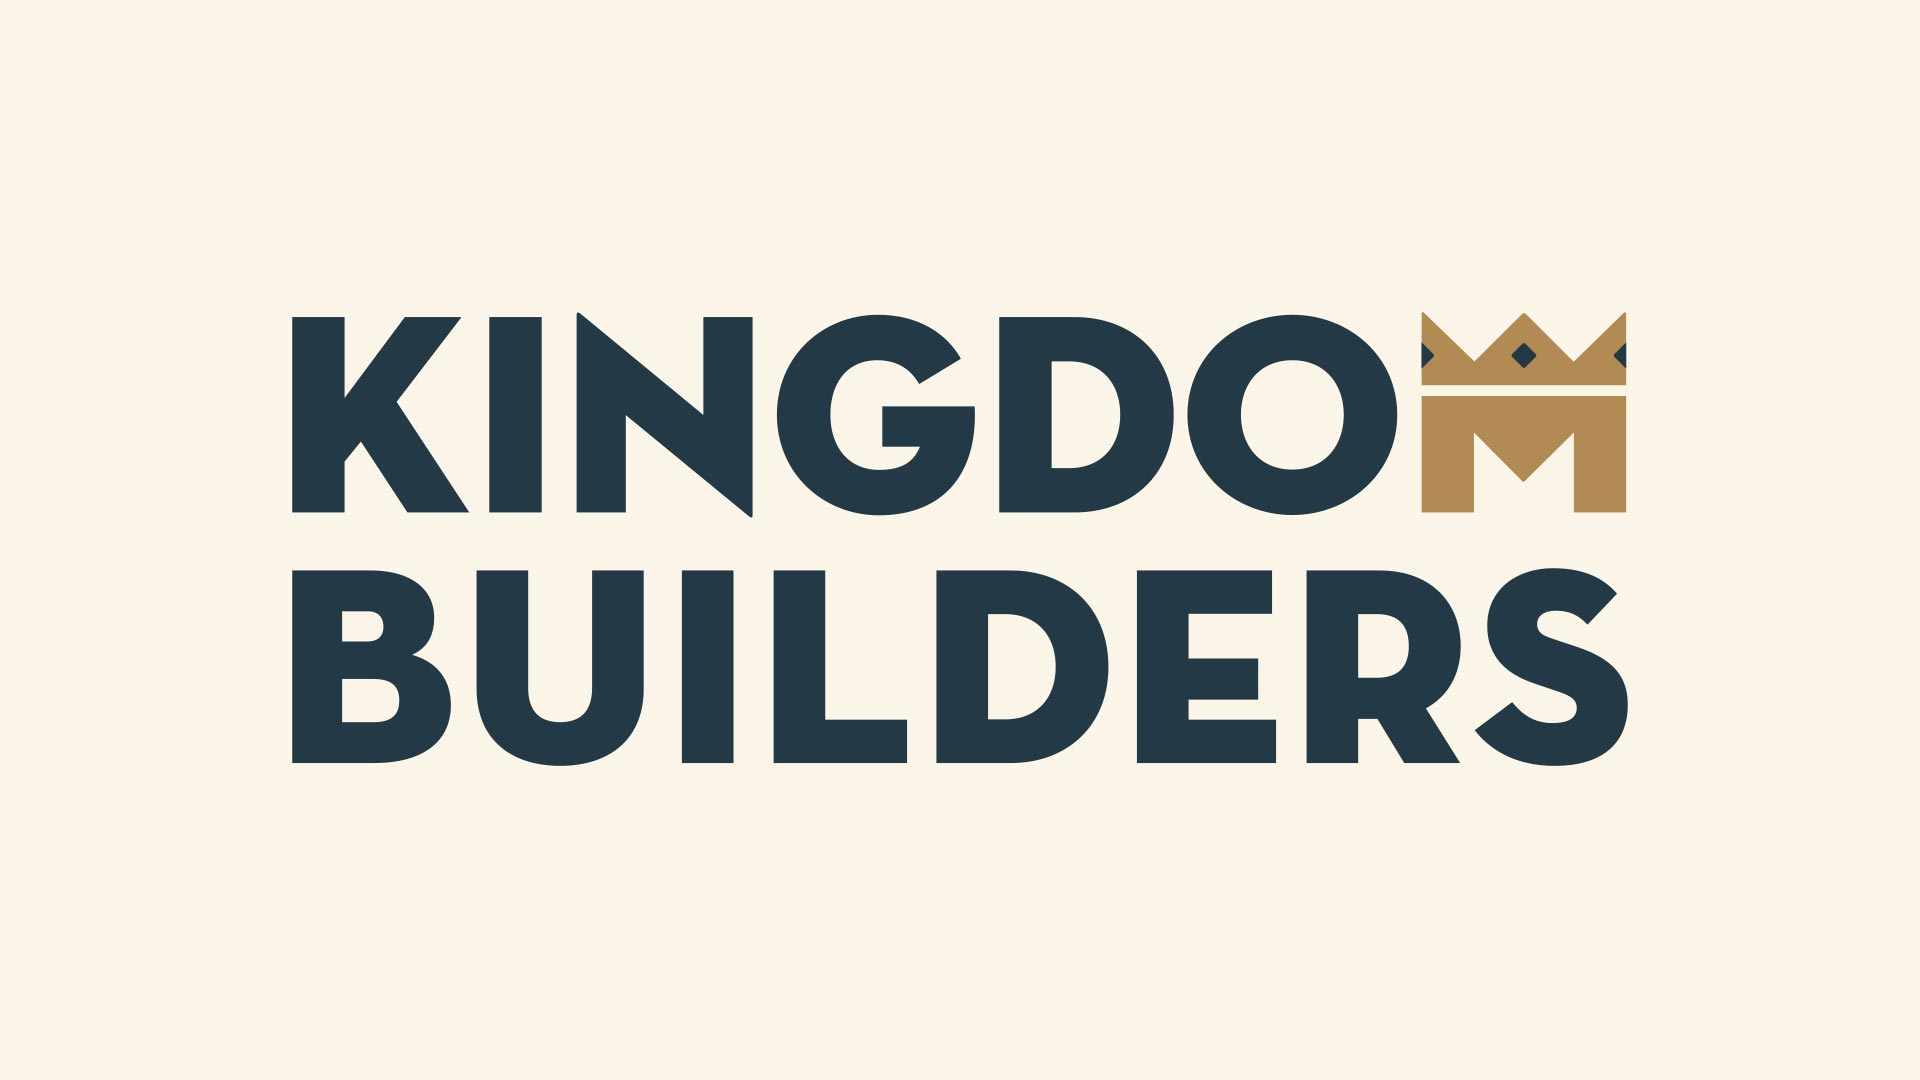 Build Into The Kingdom